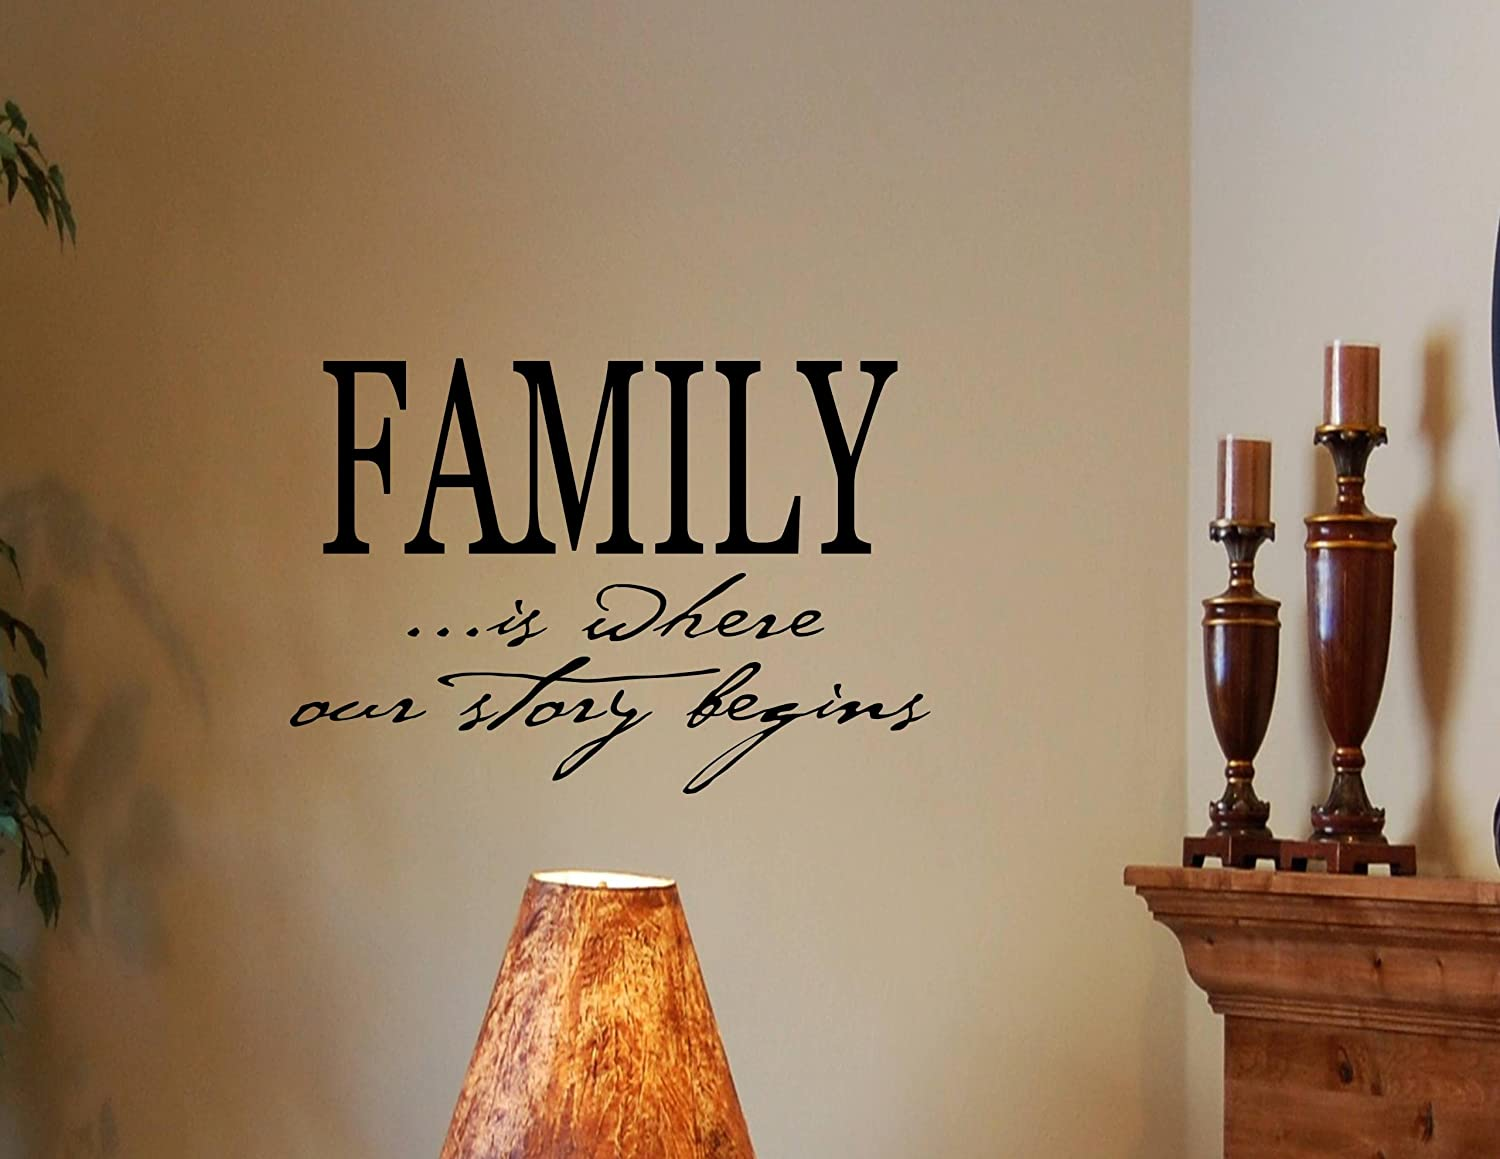 Amazon.com FAMILY IS WHERE OUR STORY BEGINS Vinyl Wall Decals Quotes Sayings Words Art D... Home u0026 Kitchen : family wall decal - www.pureclipart.com